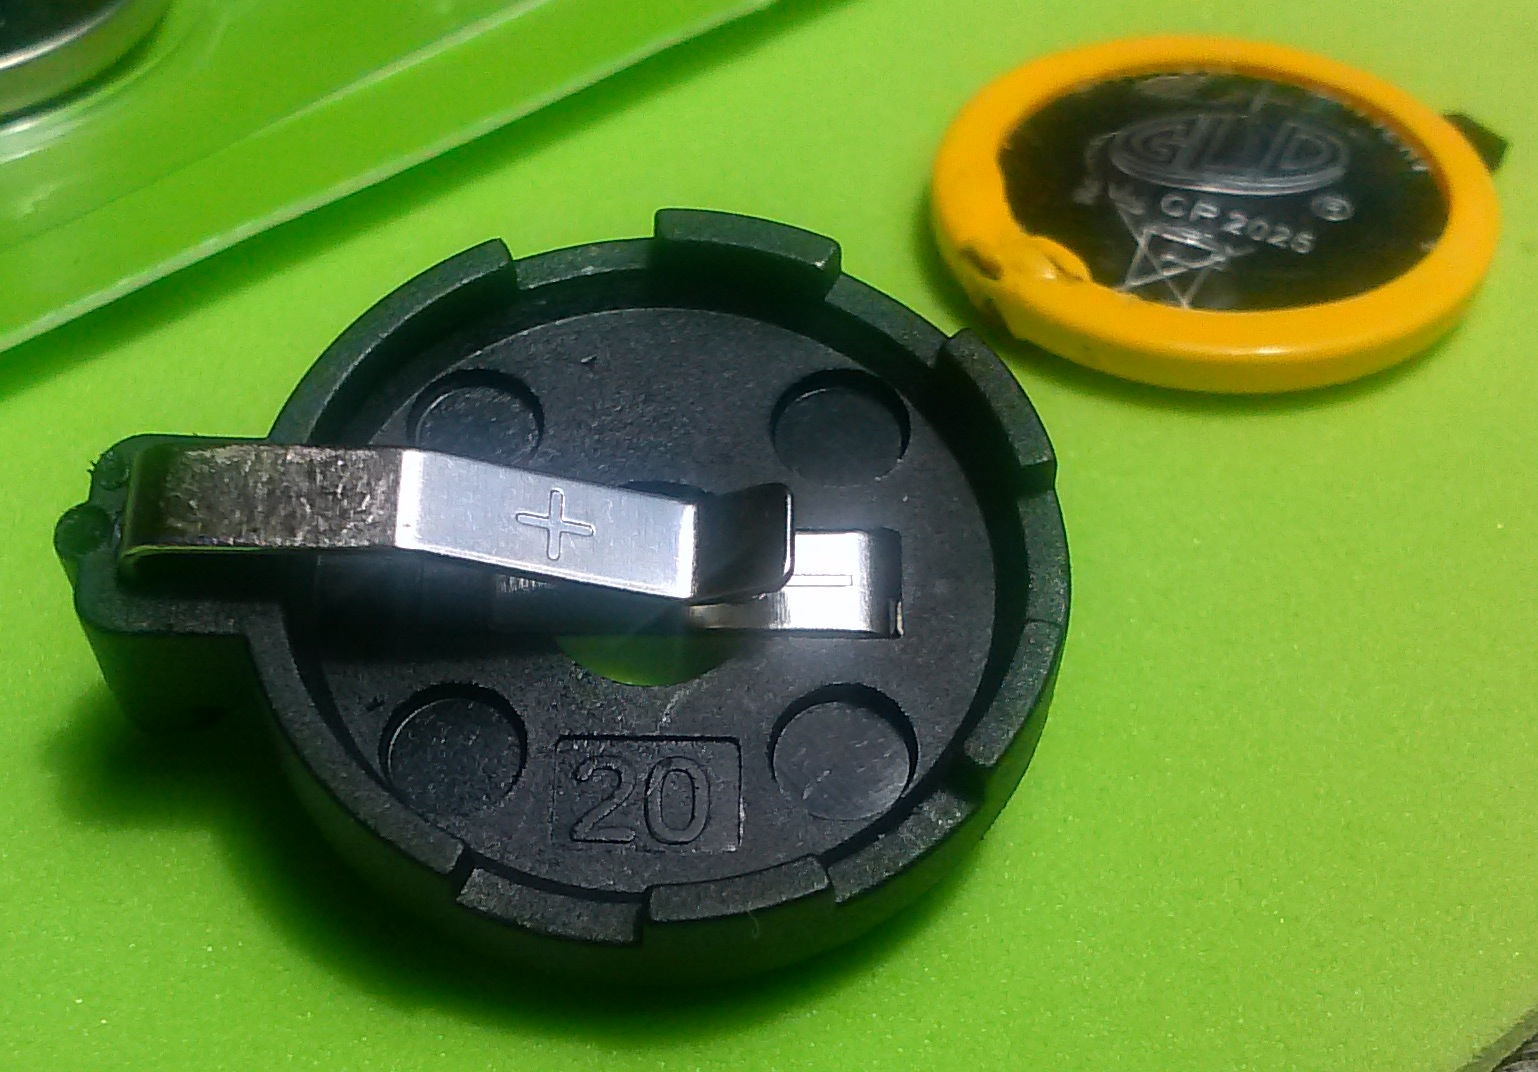 aaa battery, aa battery, d battery, button cell, aaaa battery, pp3 battery, lr44 battery, a23 battery, n battery, c battery, lantern battery, on difference between cr2025 and cr2032